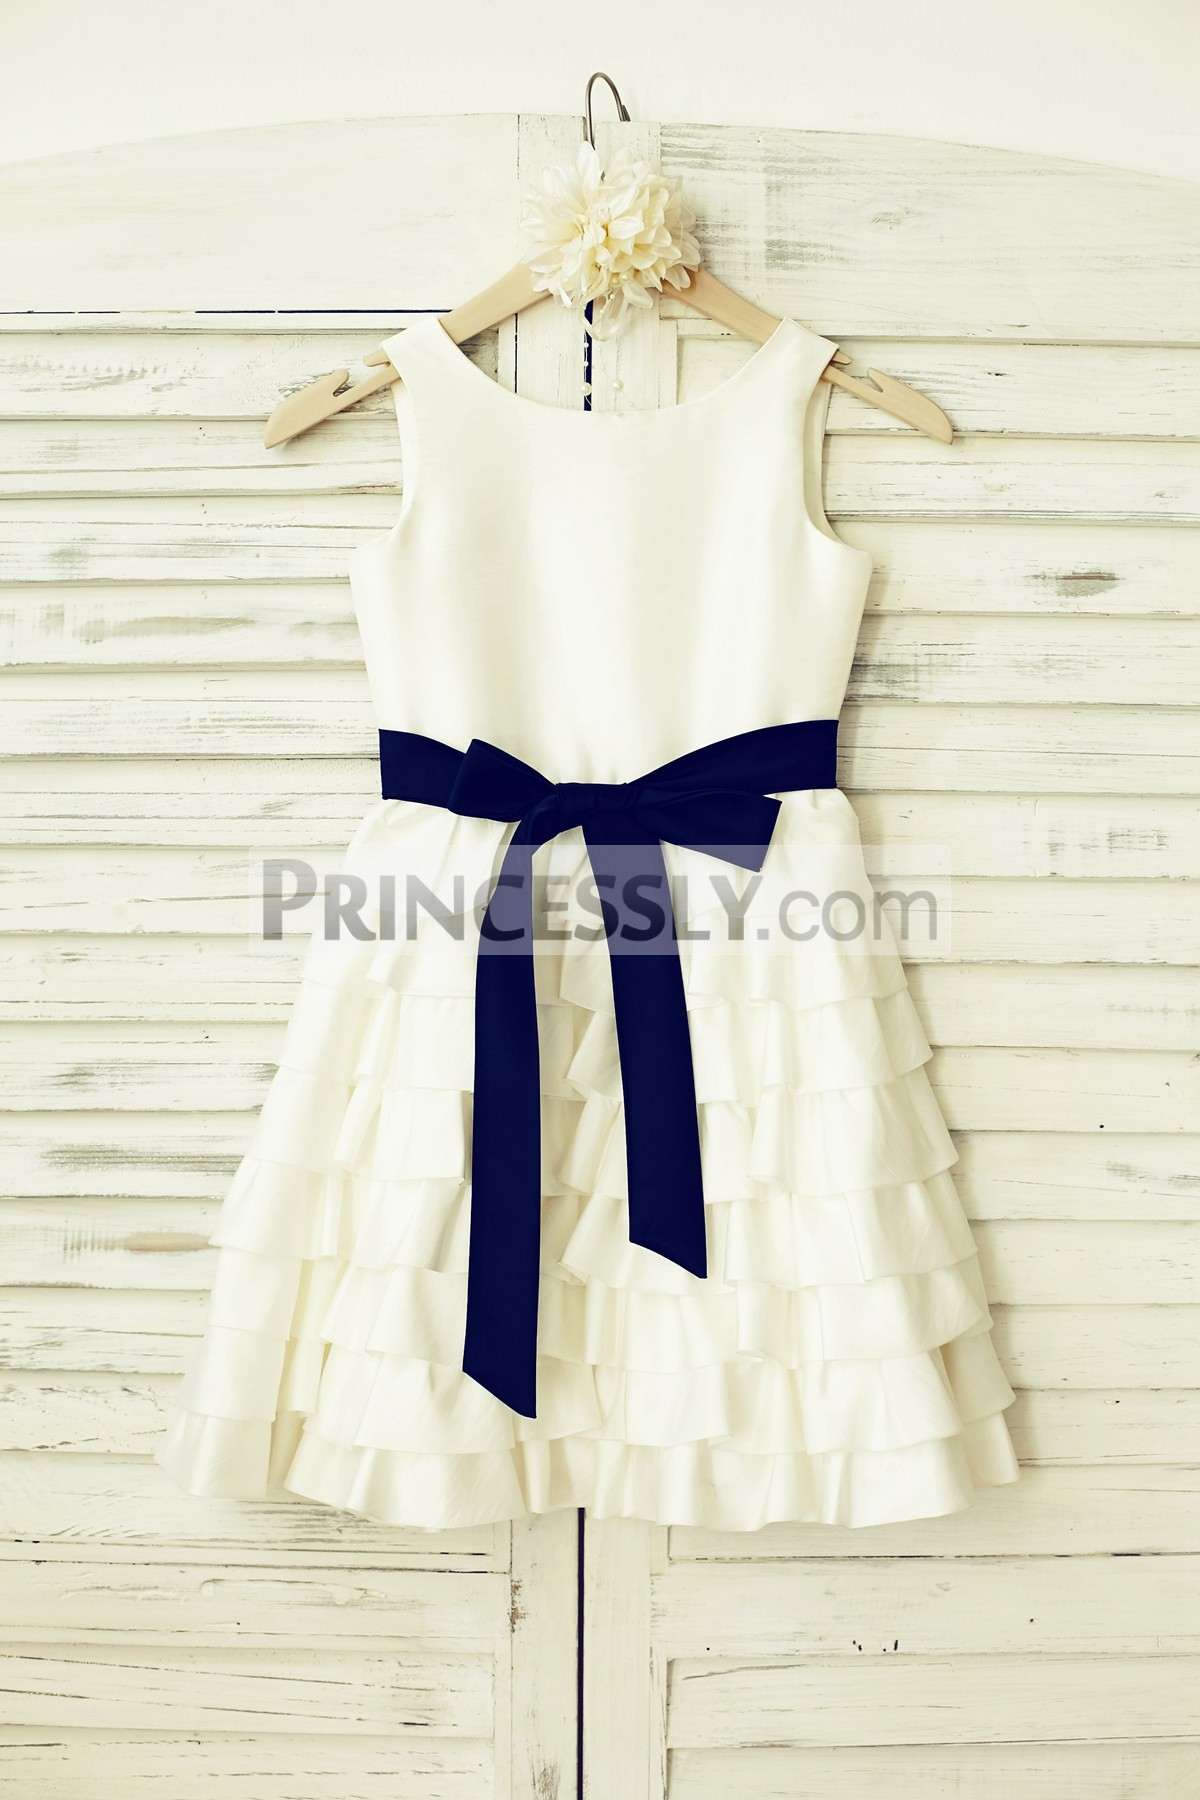 Ivory taffeta cupcake flower girl dress with navy blue sash